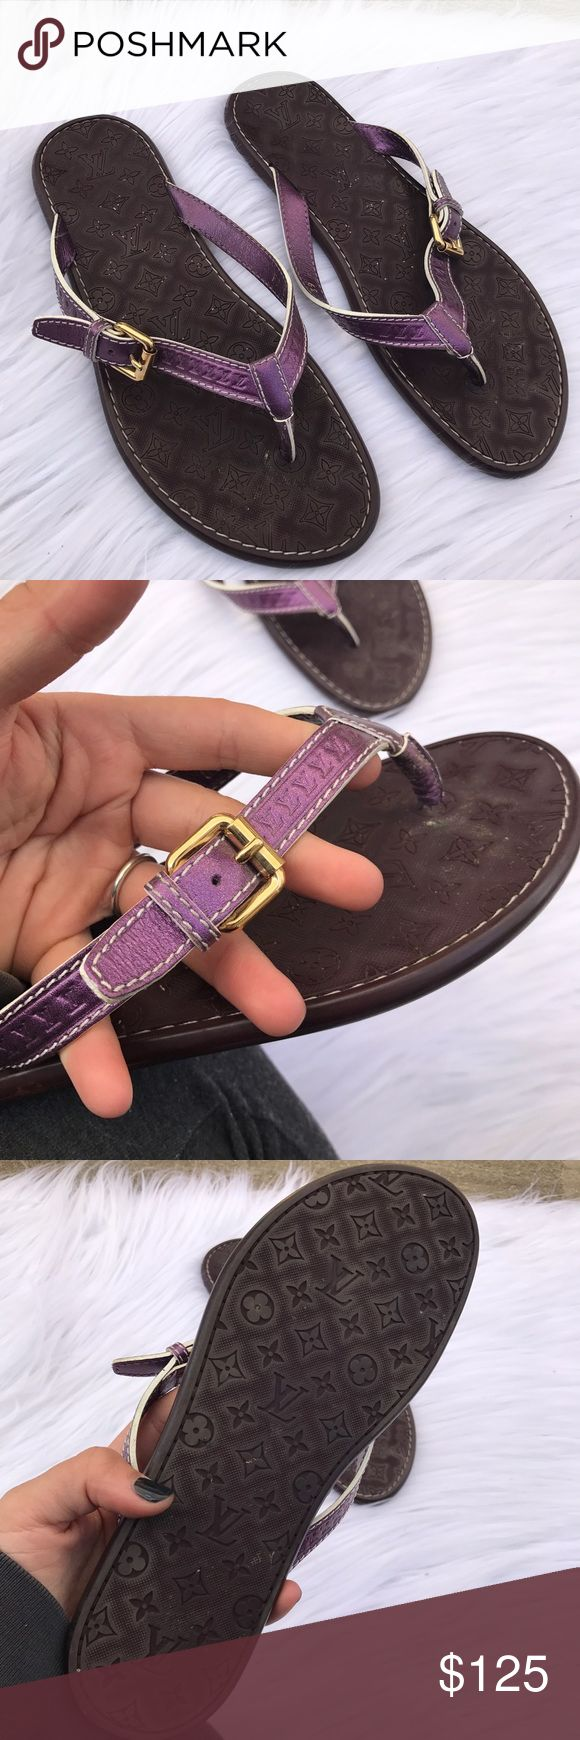 LOUIS VUITTON SZ 9 LEATHER PURPLE SANDALS SHOES 100% authentic Louis Vuitton sandals , have a bunch of little white things that can be removed they're list lint , have only been worn a couple of times, have lv embellished everywhere :) super cute for summer Louis Vuitton Shoes